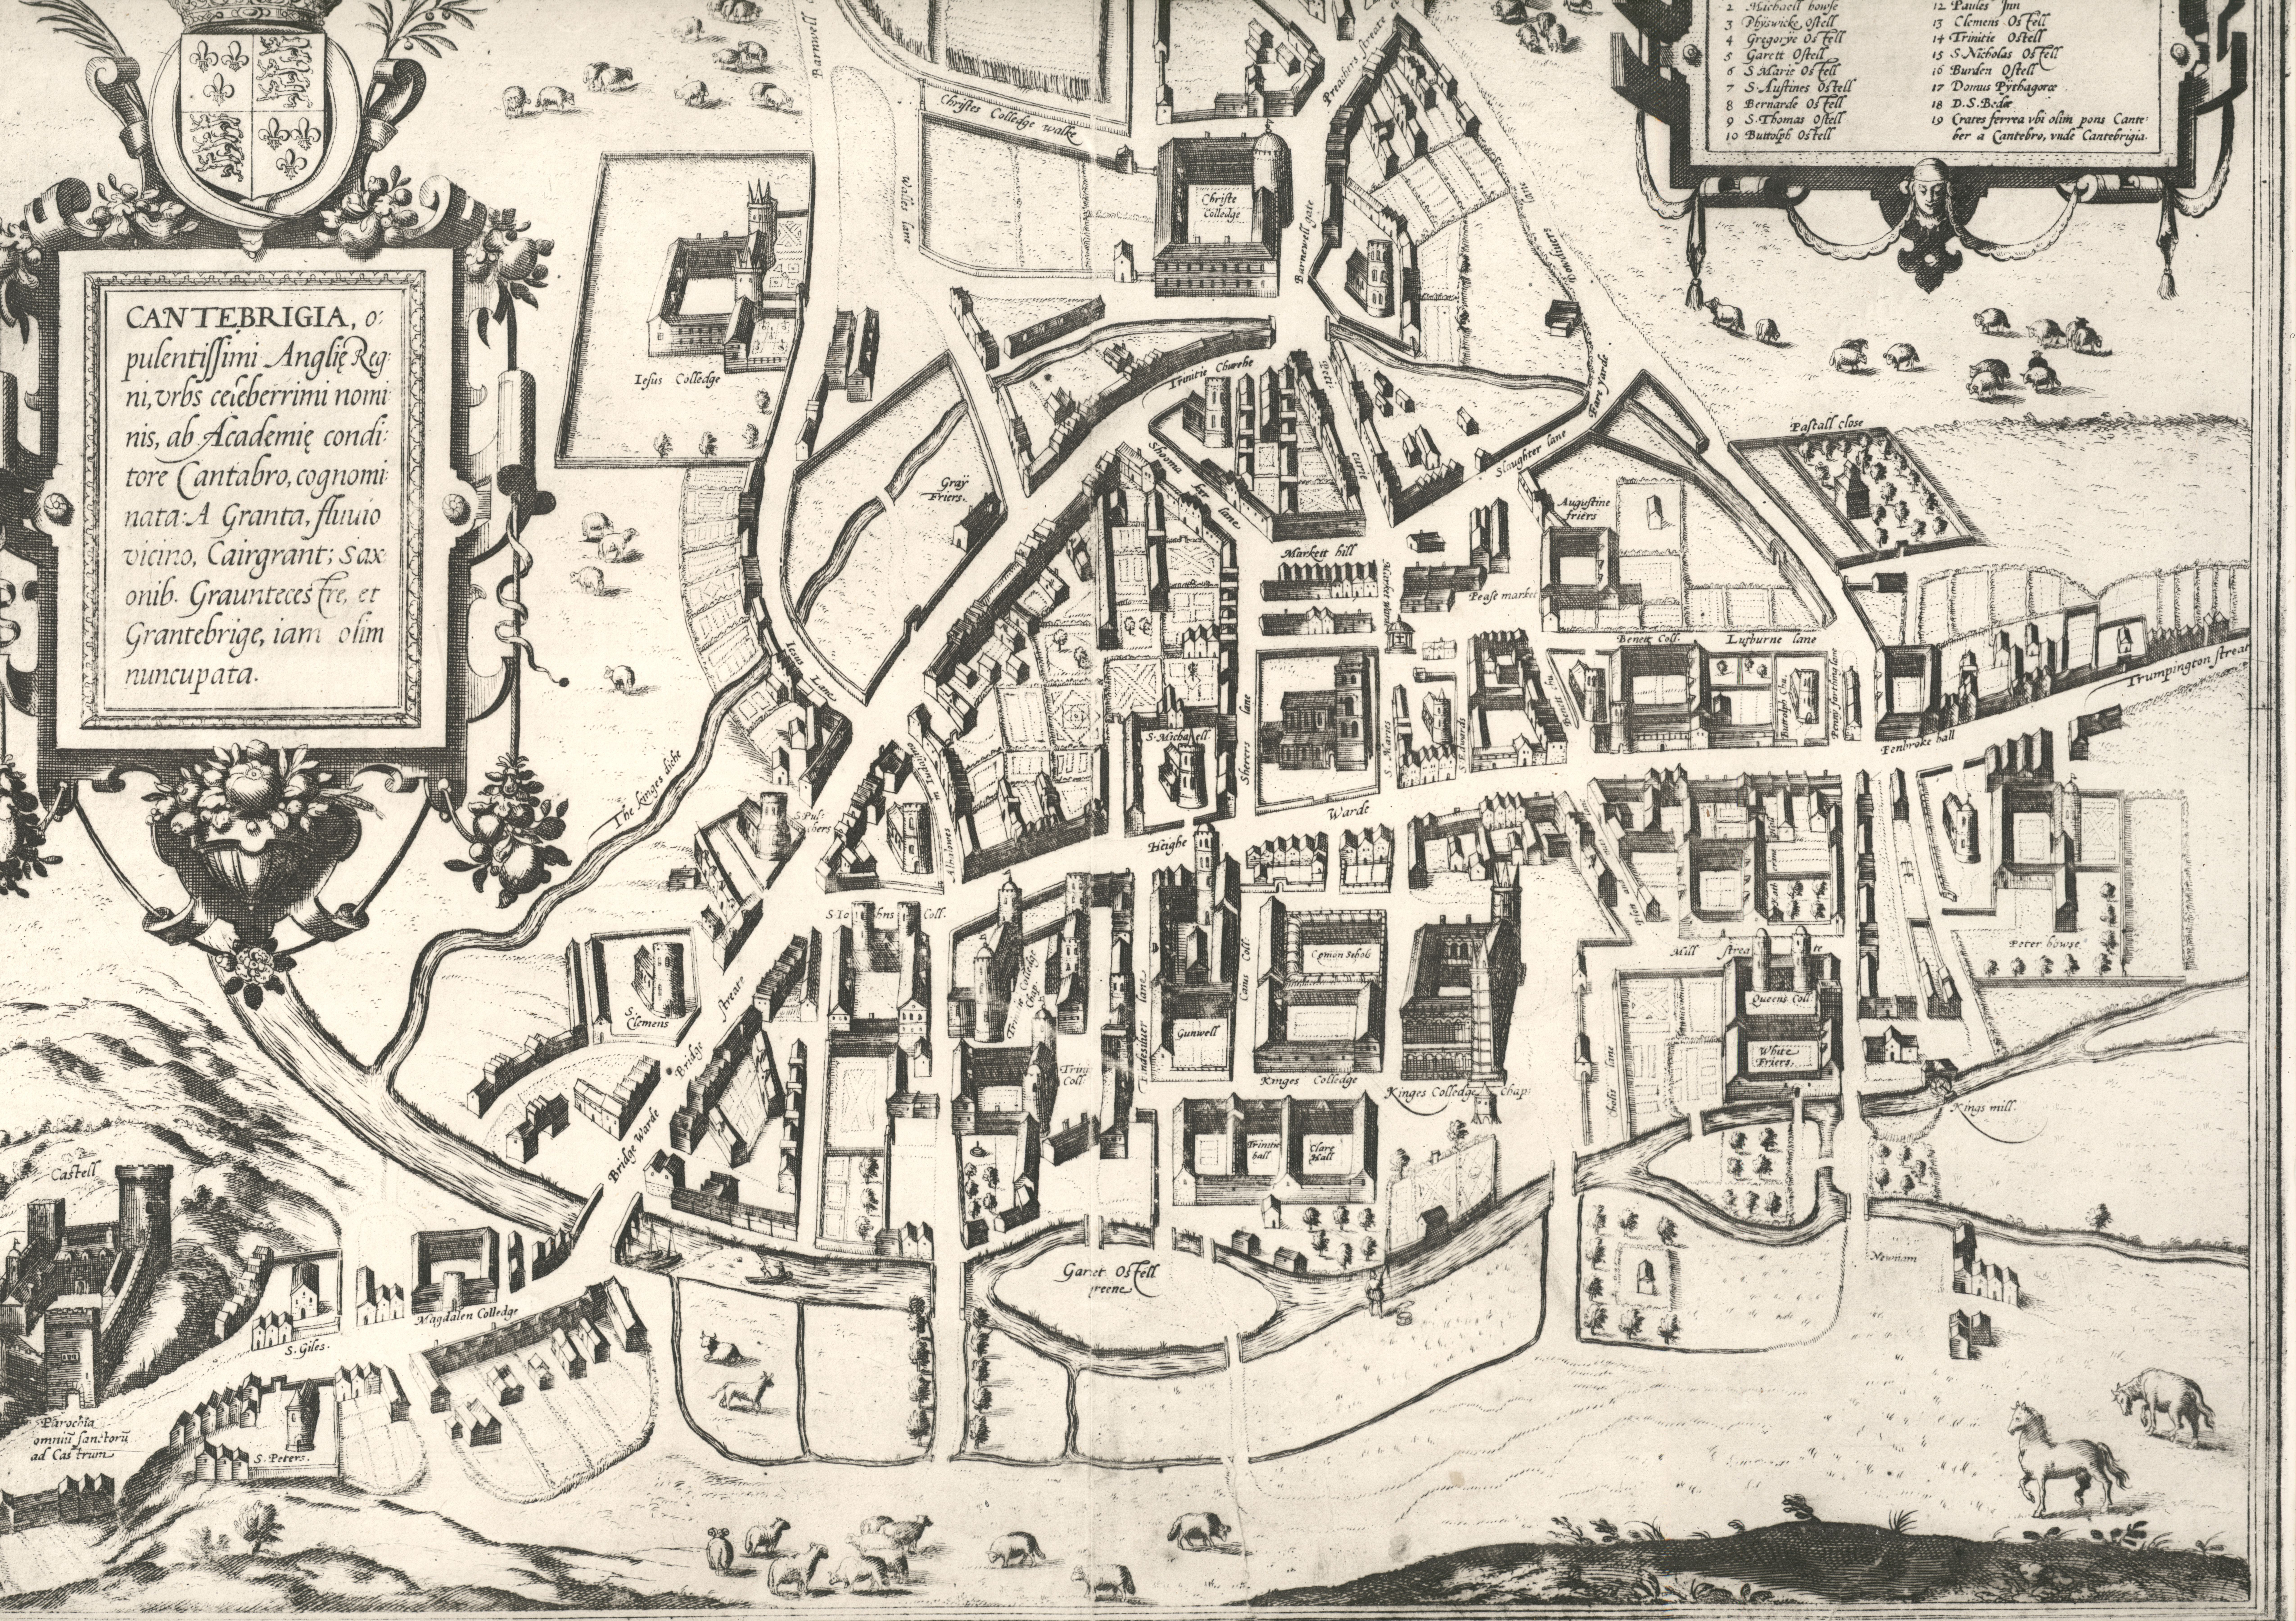 Plan of Cambridge, by George Braun, 1575, showing the current Chapel, the Old Court and other early College buildings. [Clark and Gray, plate 2]